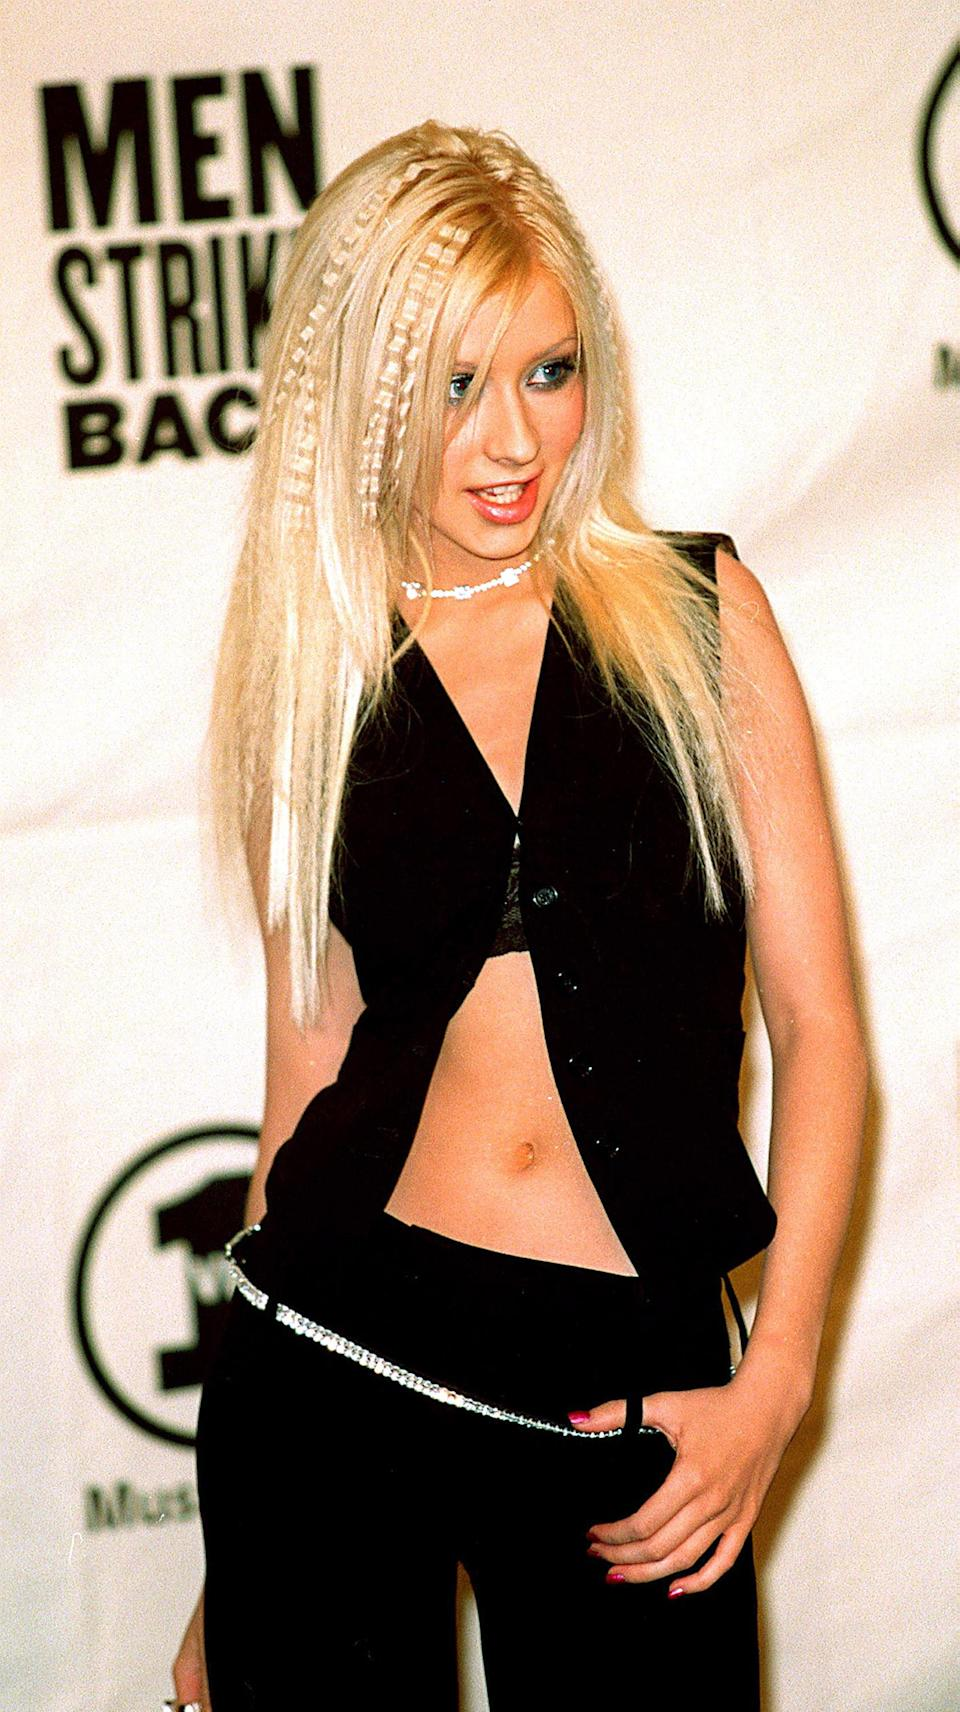 Photo ofChristina Aguilera in 2000 at a concert